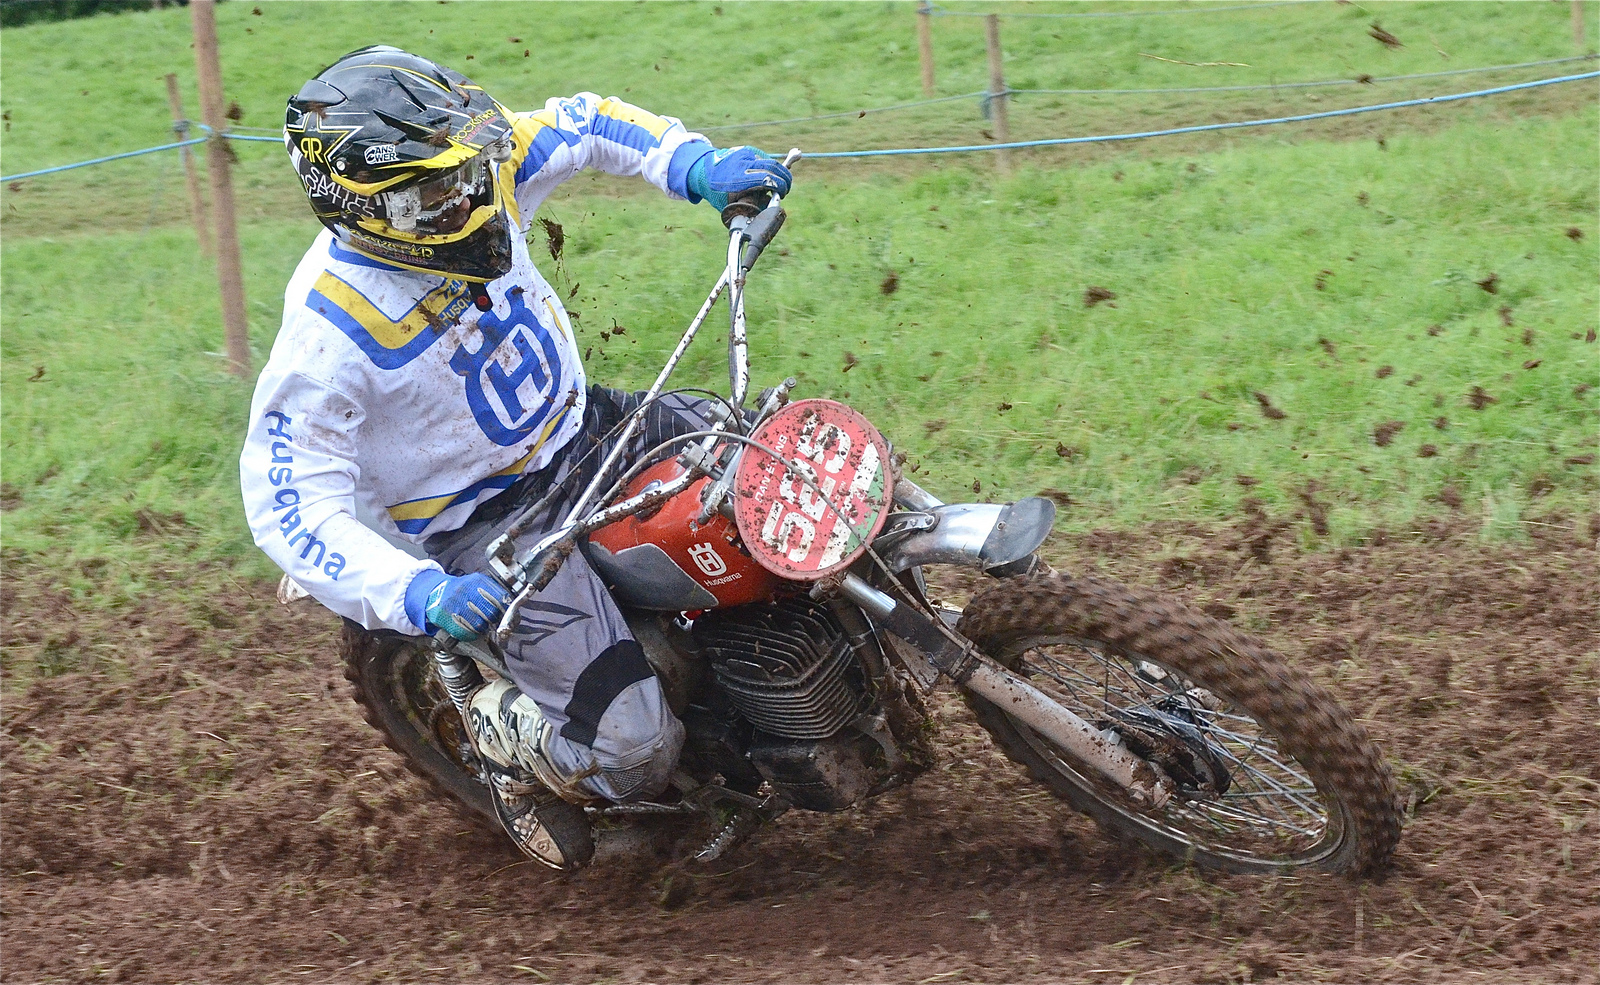 Llanthony Classic Scramble Photos September 2015 classicdirtbikerider.com..17